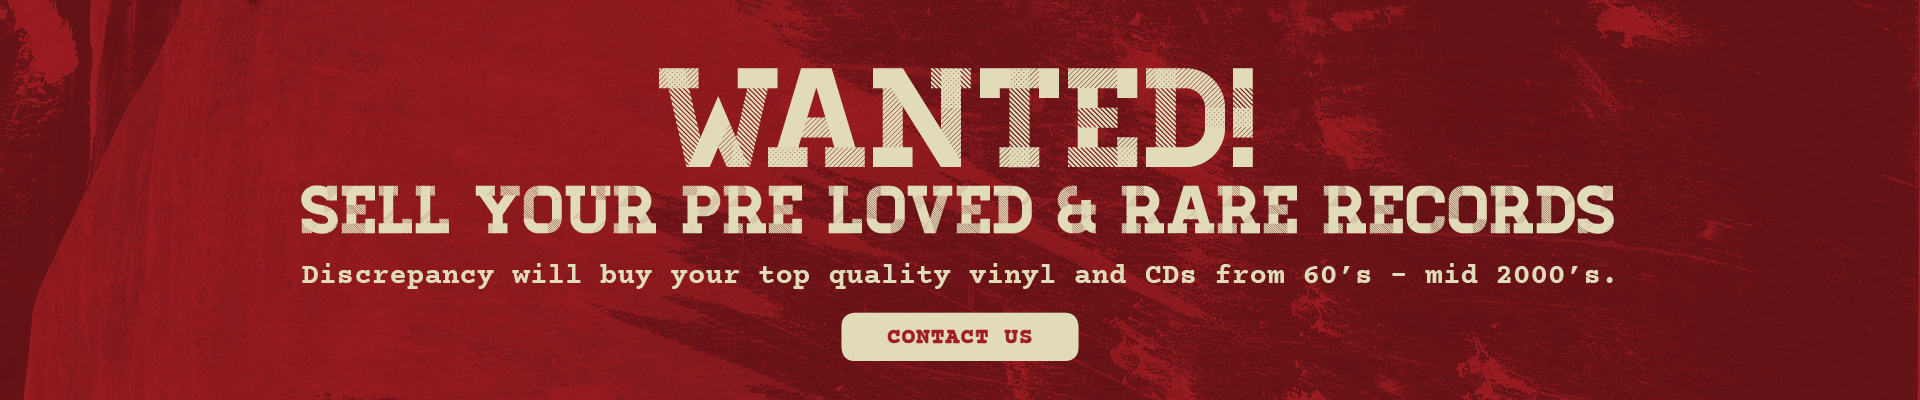 Wanted - we buy your rare records